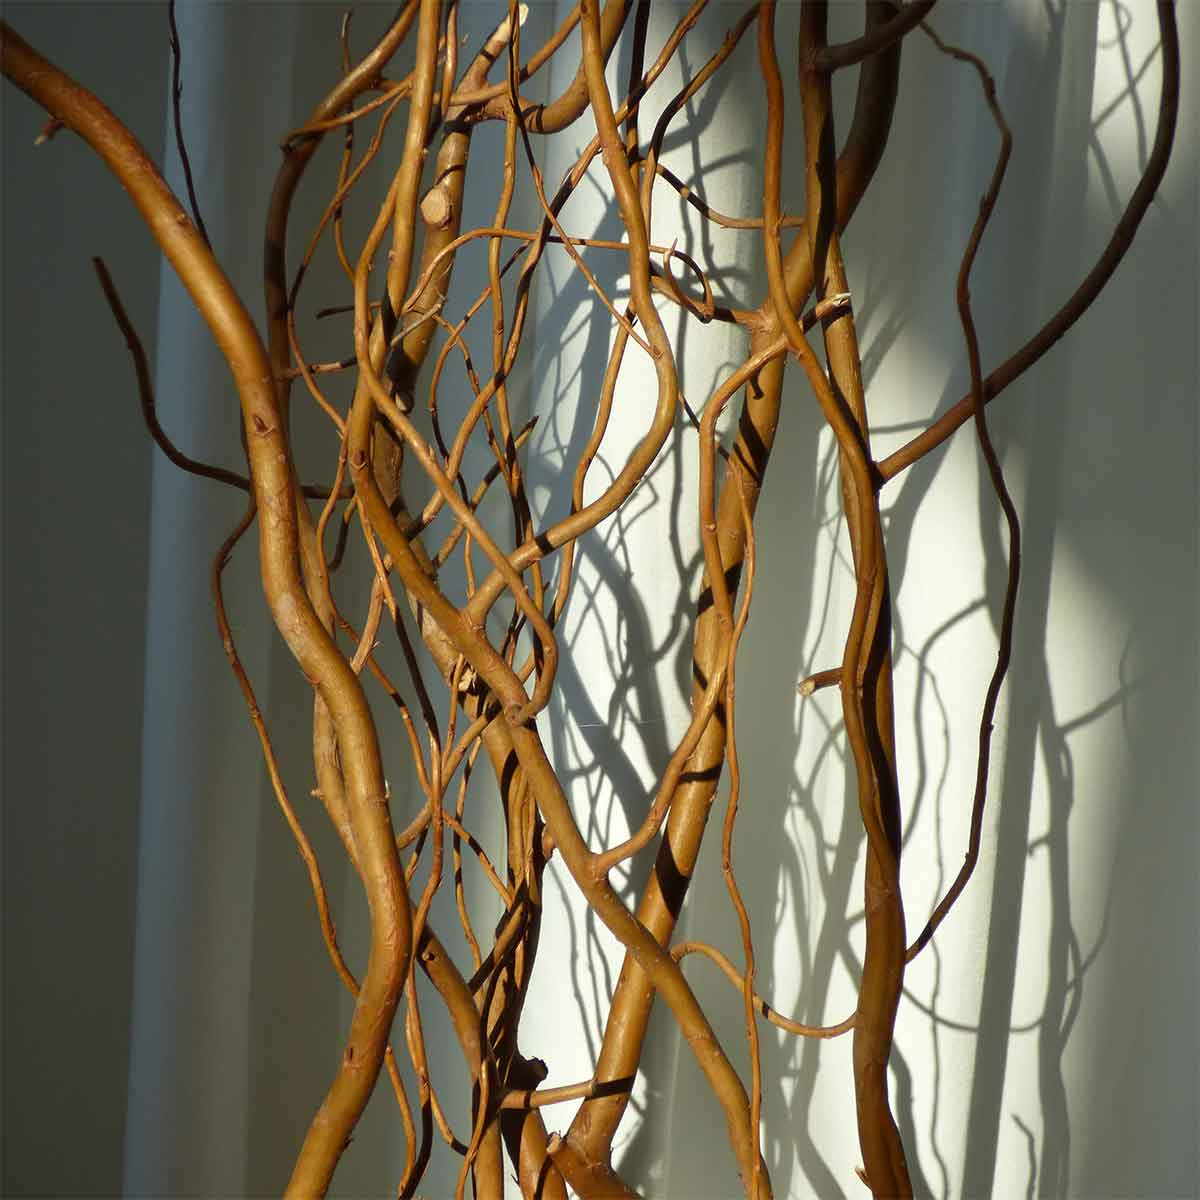 Deluxe Dried Curly Willow Branches